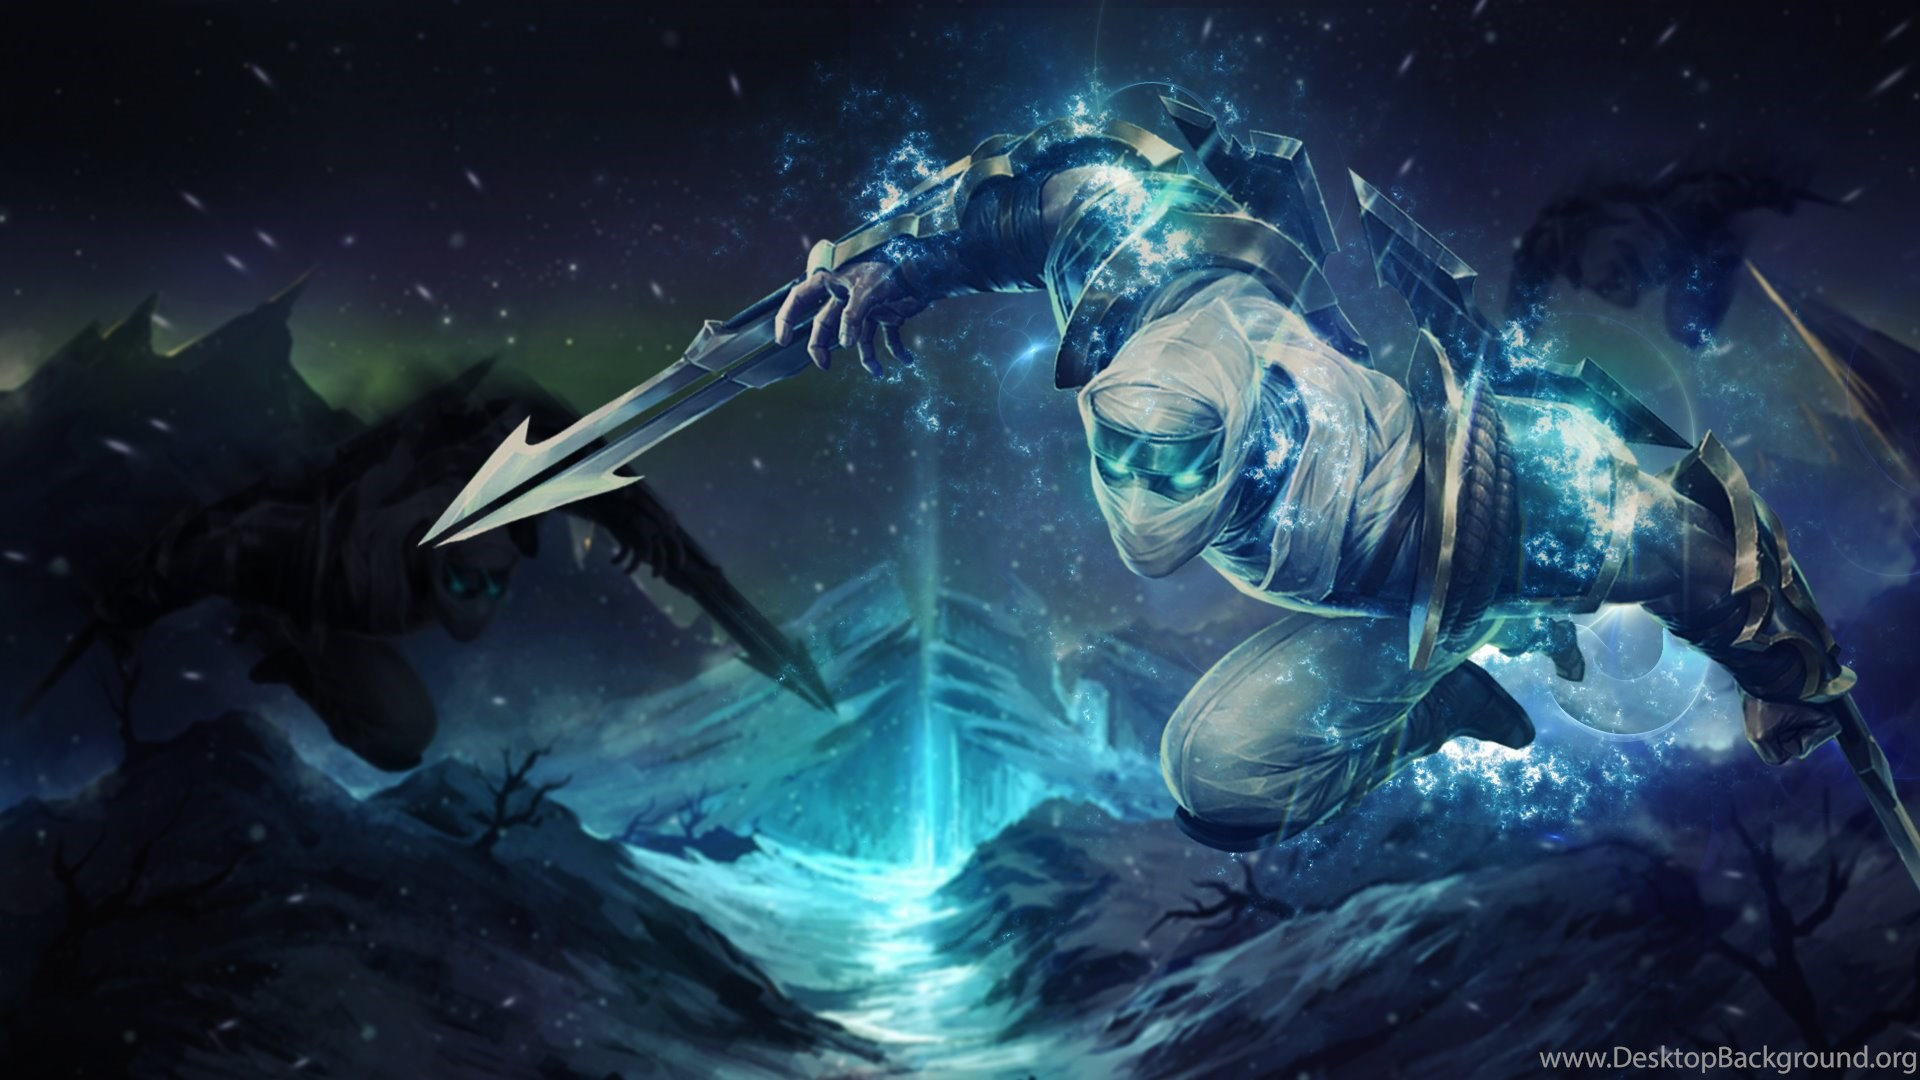 Games Wallpaper League Of Legends Zed Wallpapers Phone Hd Quality Desktop Background